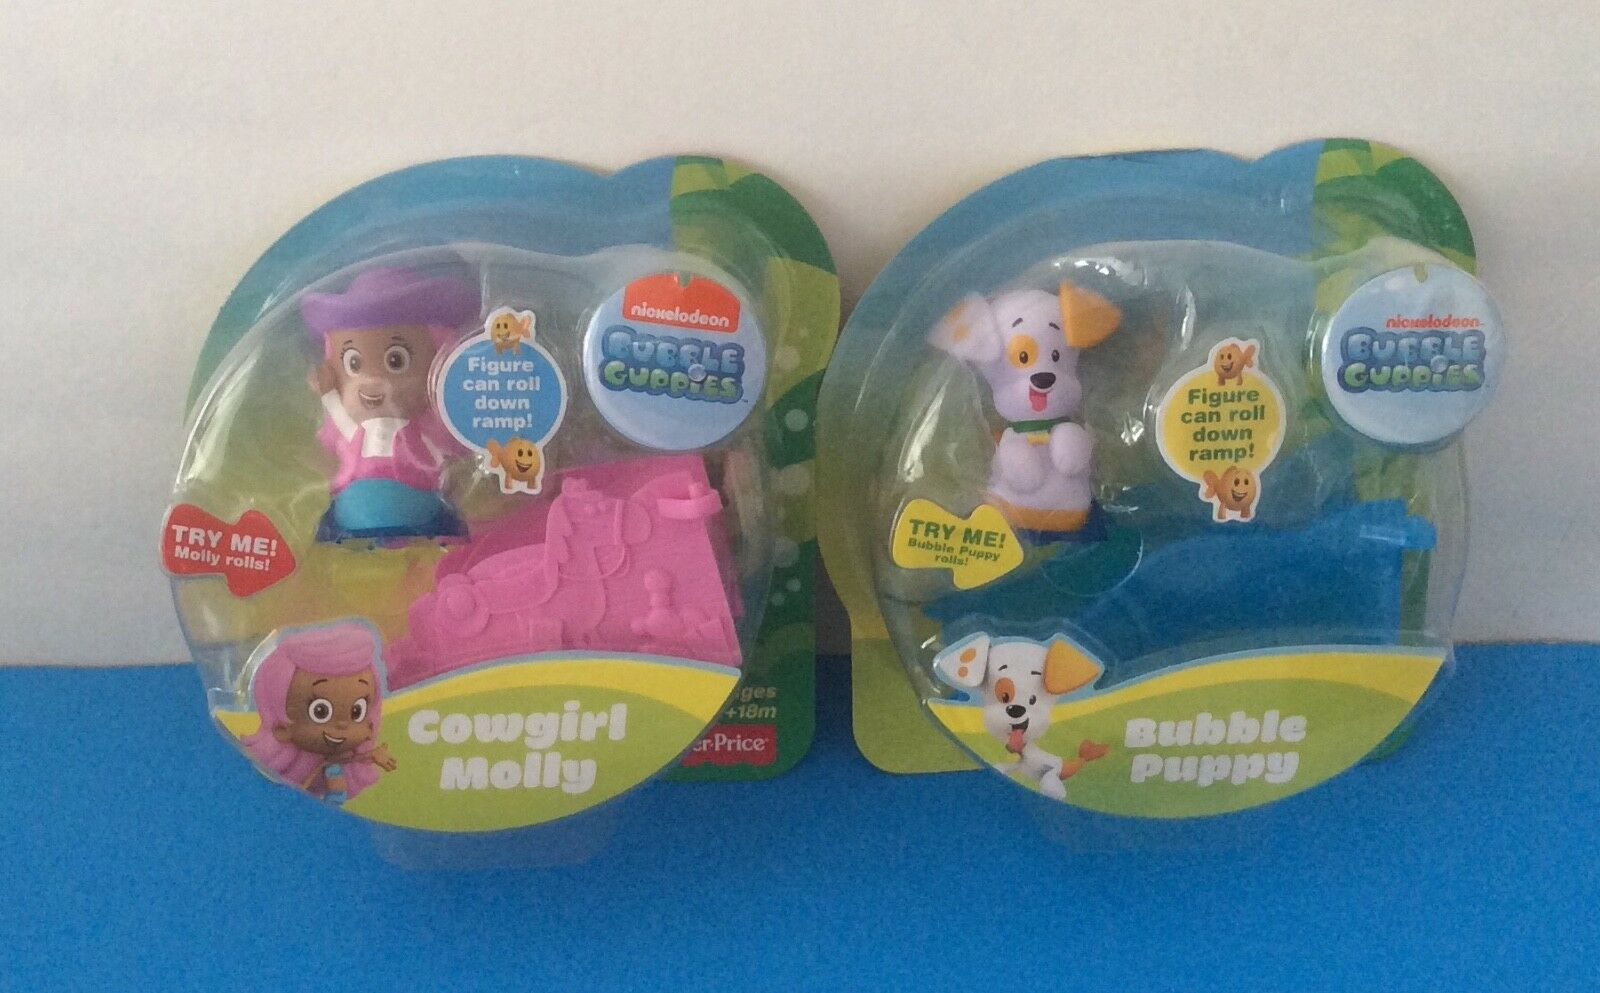 New Set of 2 BUBBLE GUPPIES FIGURES Roll - BUBBLE PUPPY & COWGIRL MOLLY